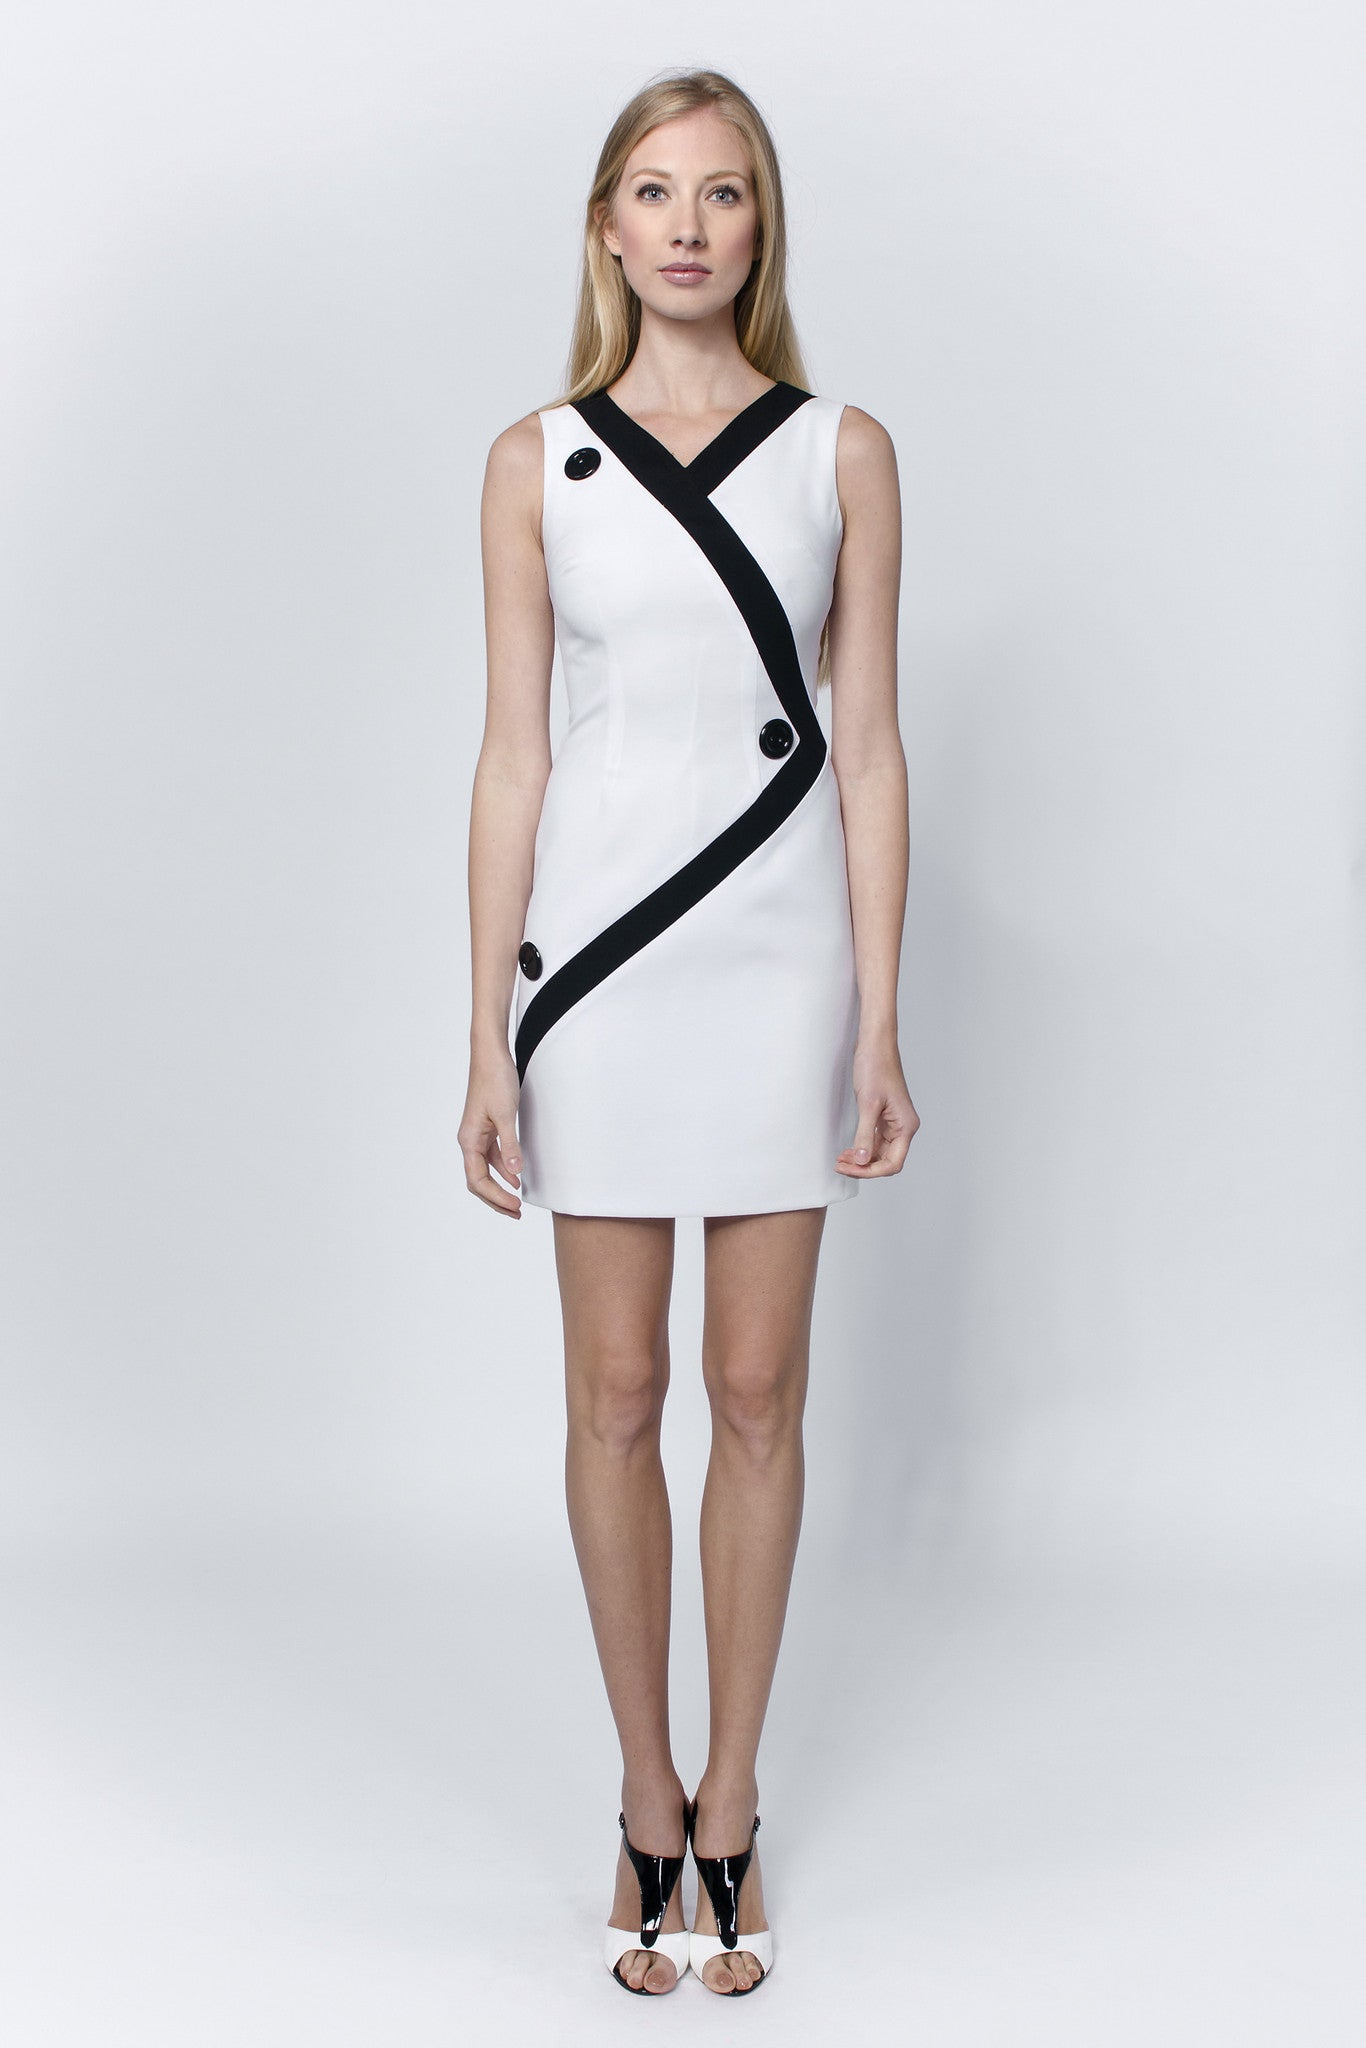 Linea-L-sleeveless-white-dress-embellished-with-black-stripe-and-buttons-Laccafashion-Linea-L